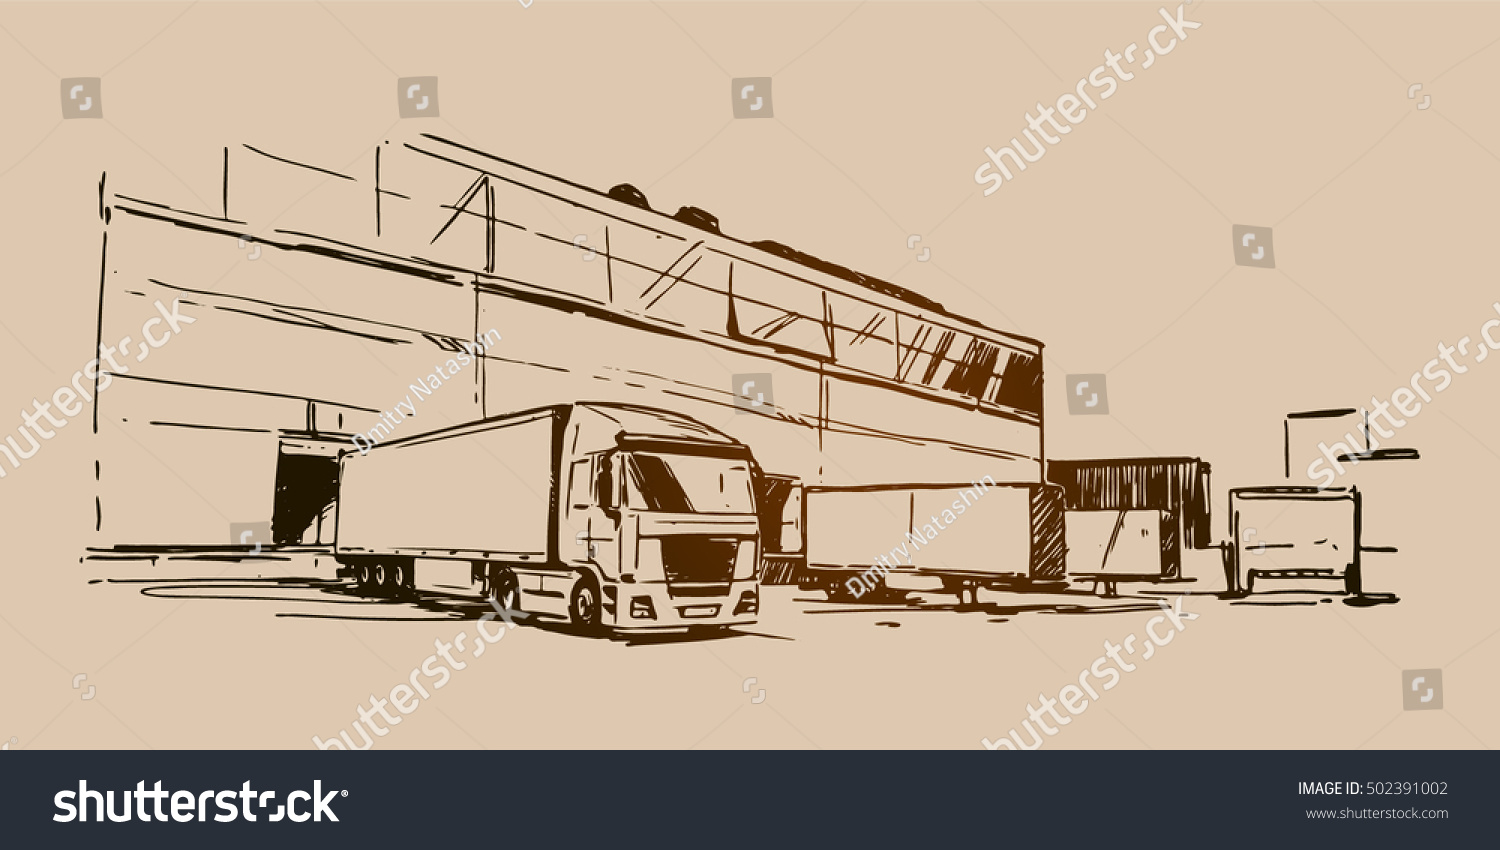 Warehouse and a semi-trailer truck sketch